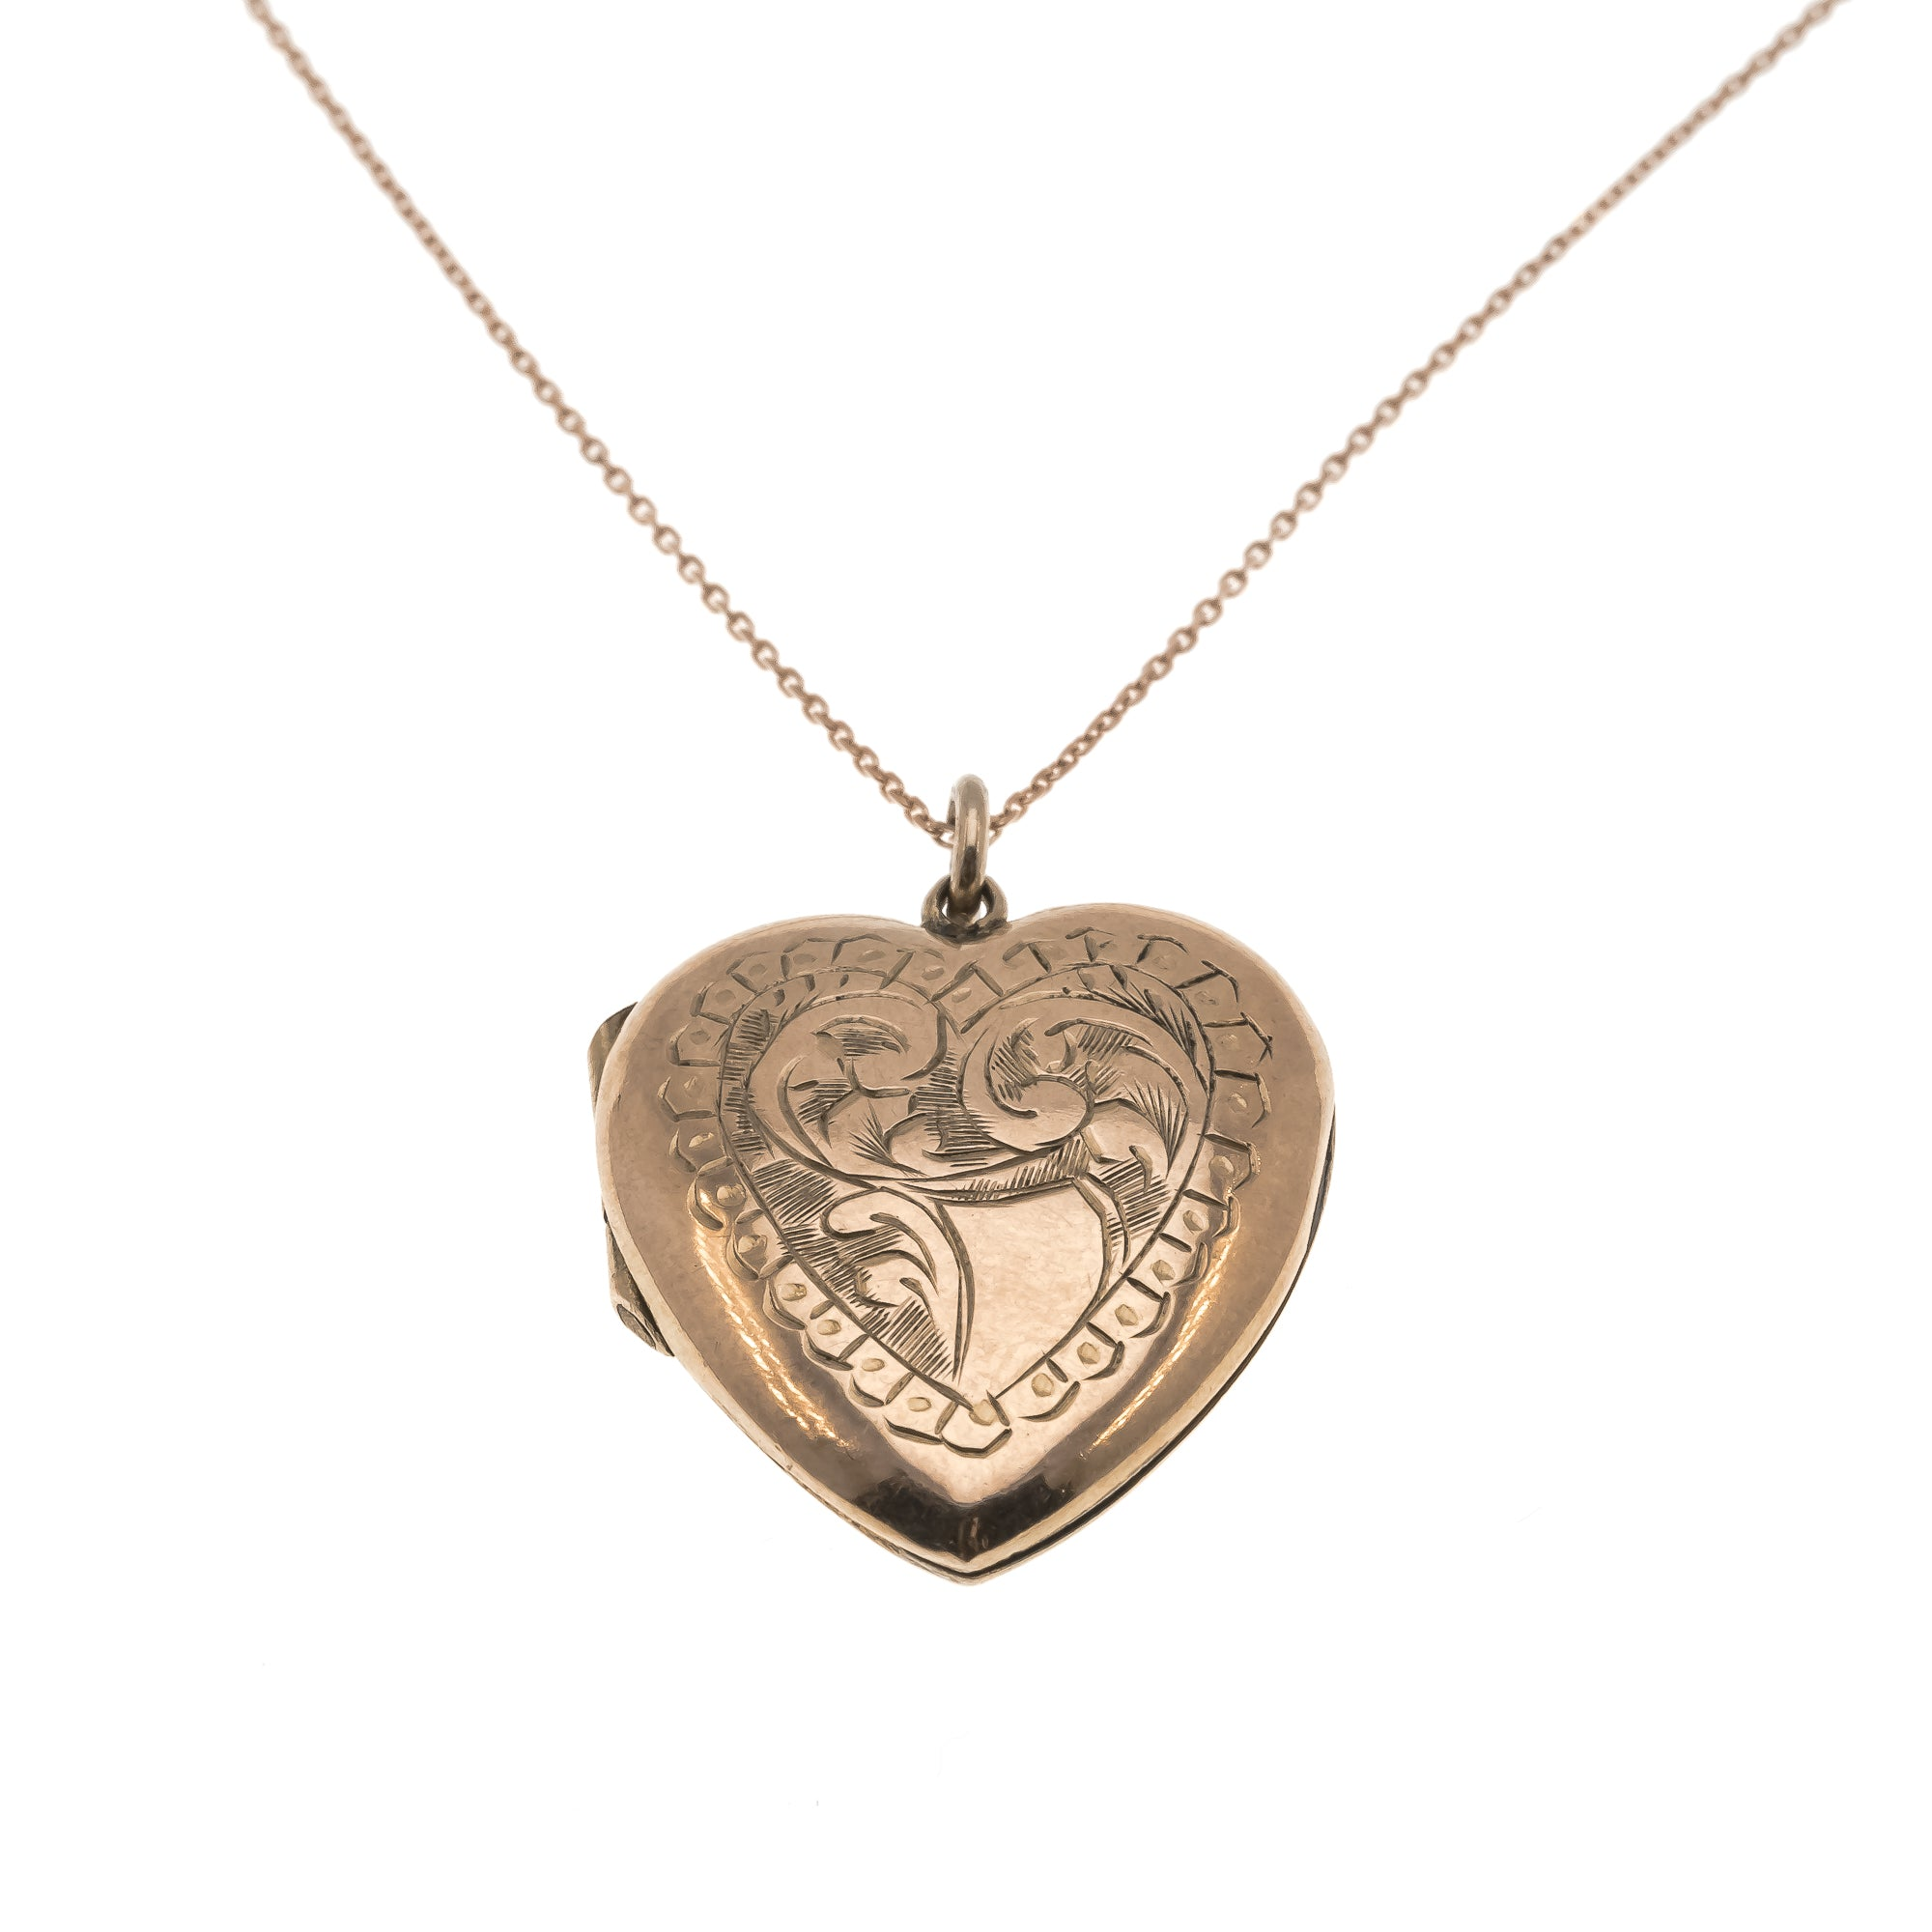 All My Love - Victorian 9K Rose Gold Engraved Heart Locket (VICP027)